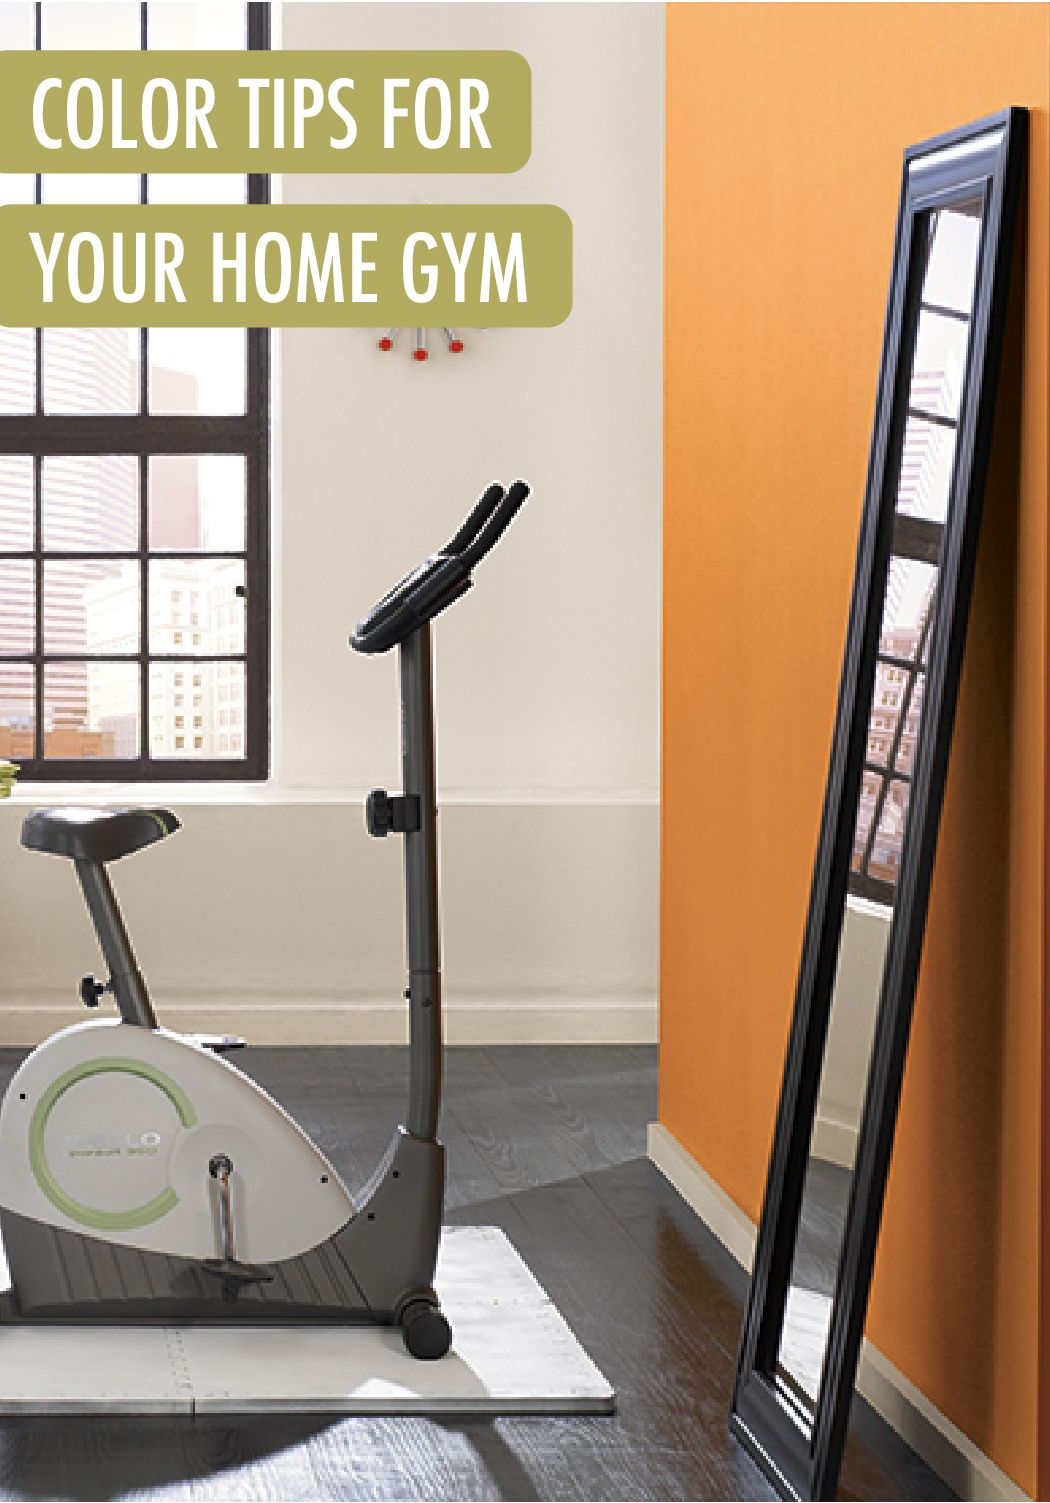 Best Color to Paint Home Gym